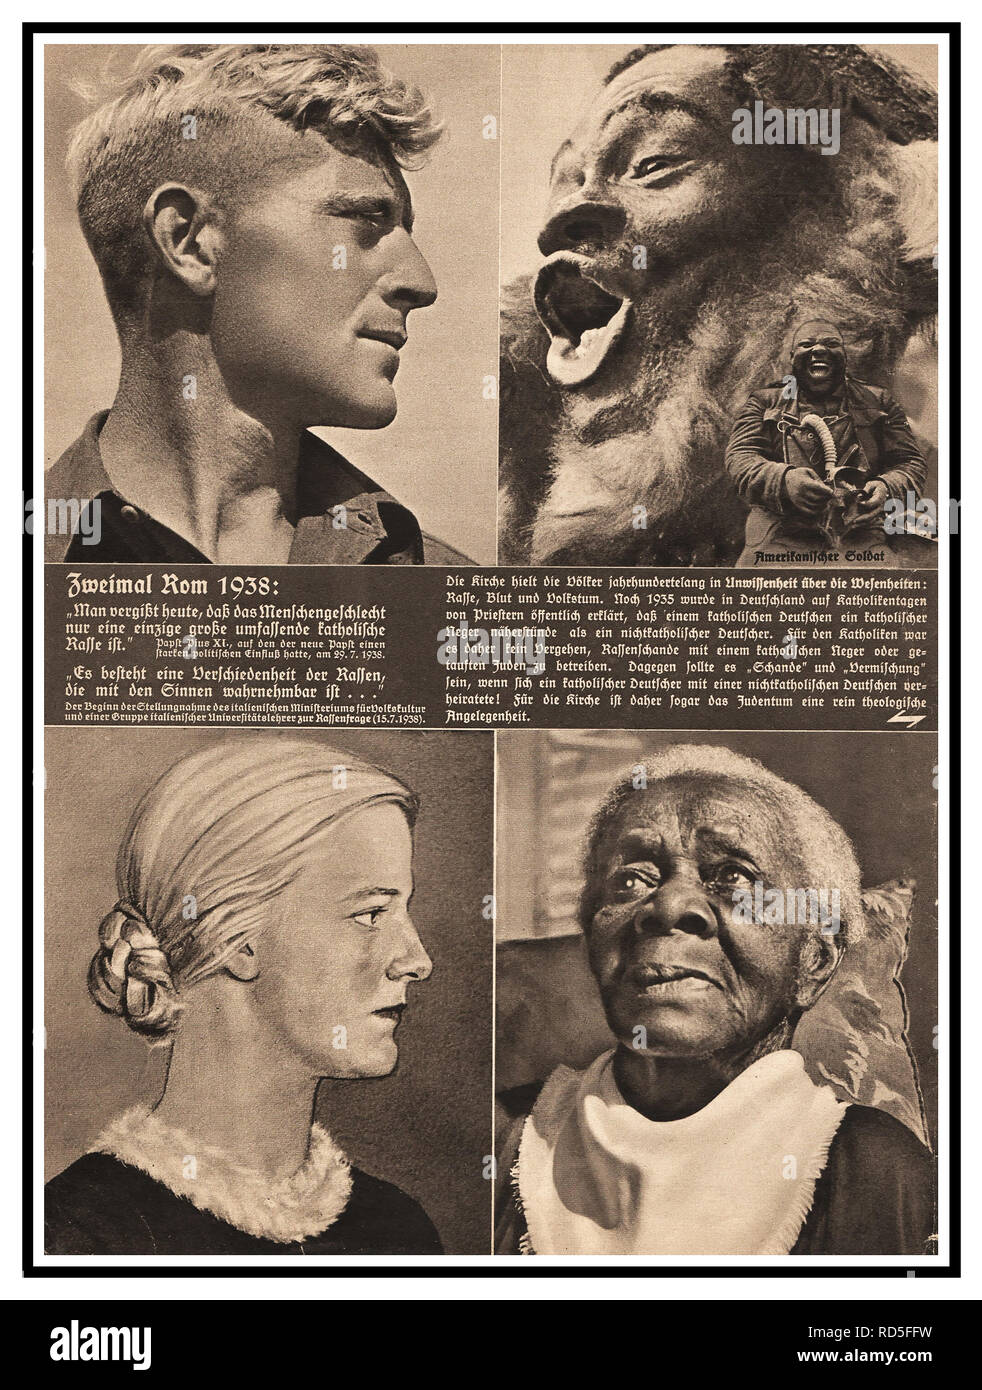 1938 Vintage Nazi German Racist Propaganda Press article. Stereotype images portraying the purest stock of Aryans according to Nazi ideology, the Nordic people of Germany, compared to other Nazi designated 'inferior' race stereotypes. - Stock Image